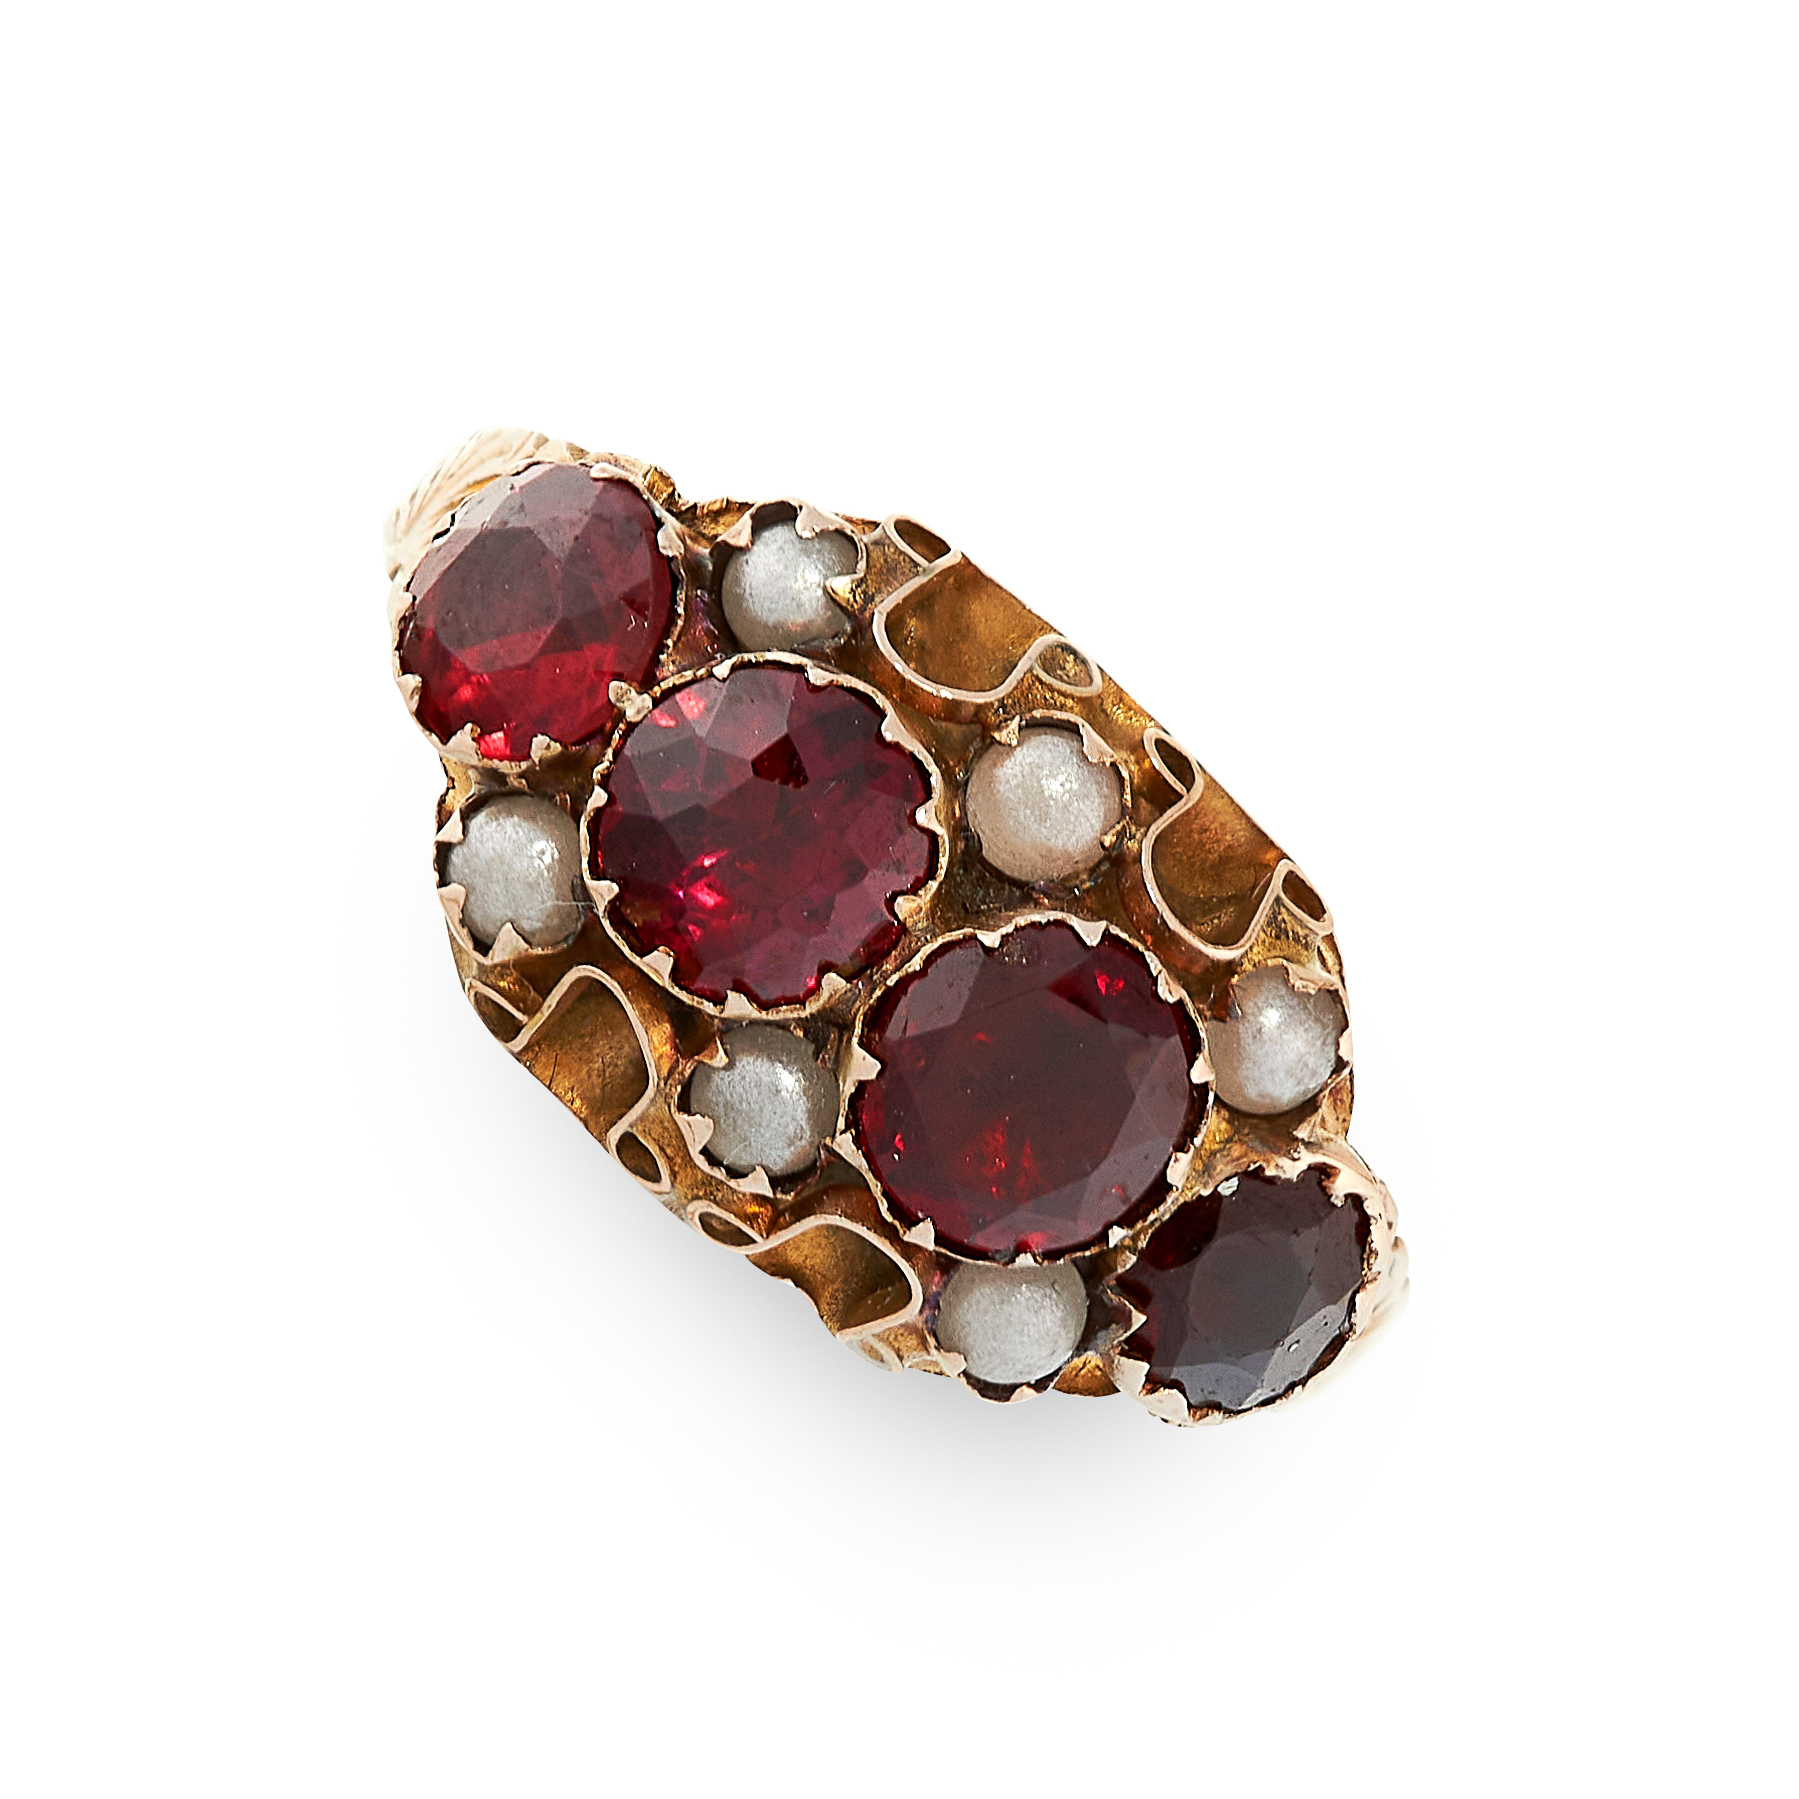 ANTIQUE GARNET AND PEARL RING in yellow gold, comprising of four round cut garnets accented by six